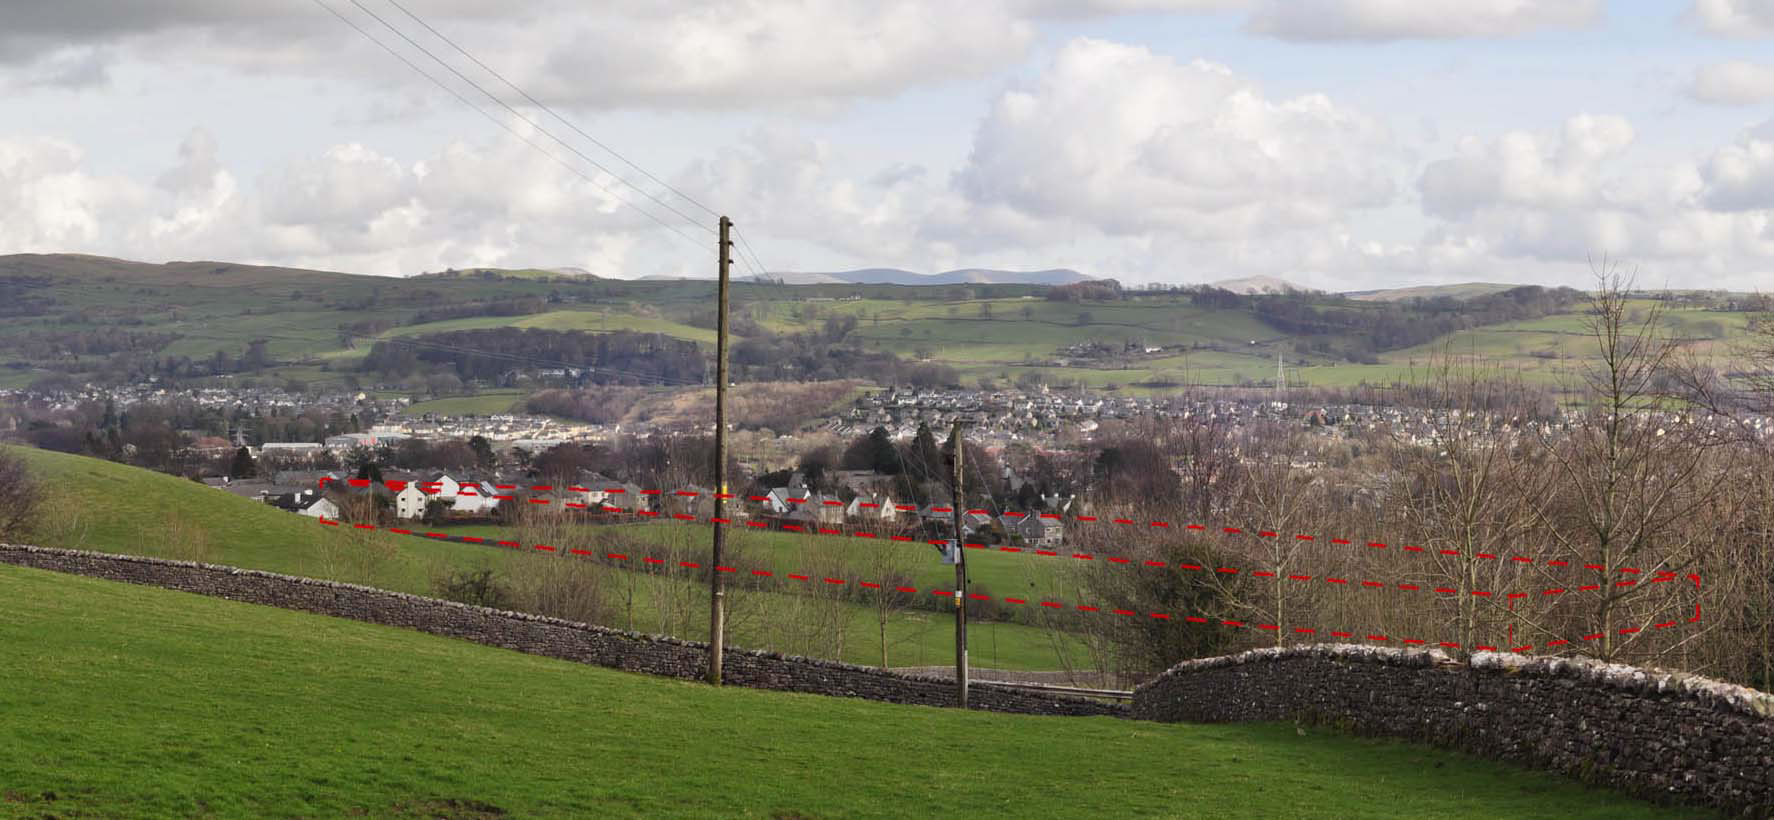 1 - https://www.galpinlandscape.co.uk/wp-content/uploads/2016/02/Kendal-Housing-01_1920.jpg